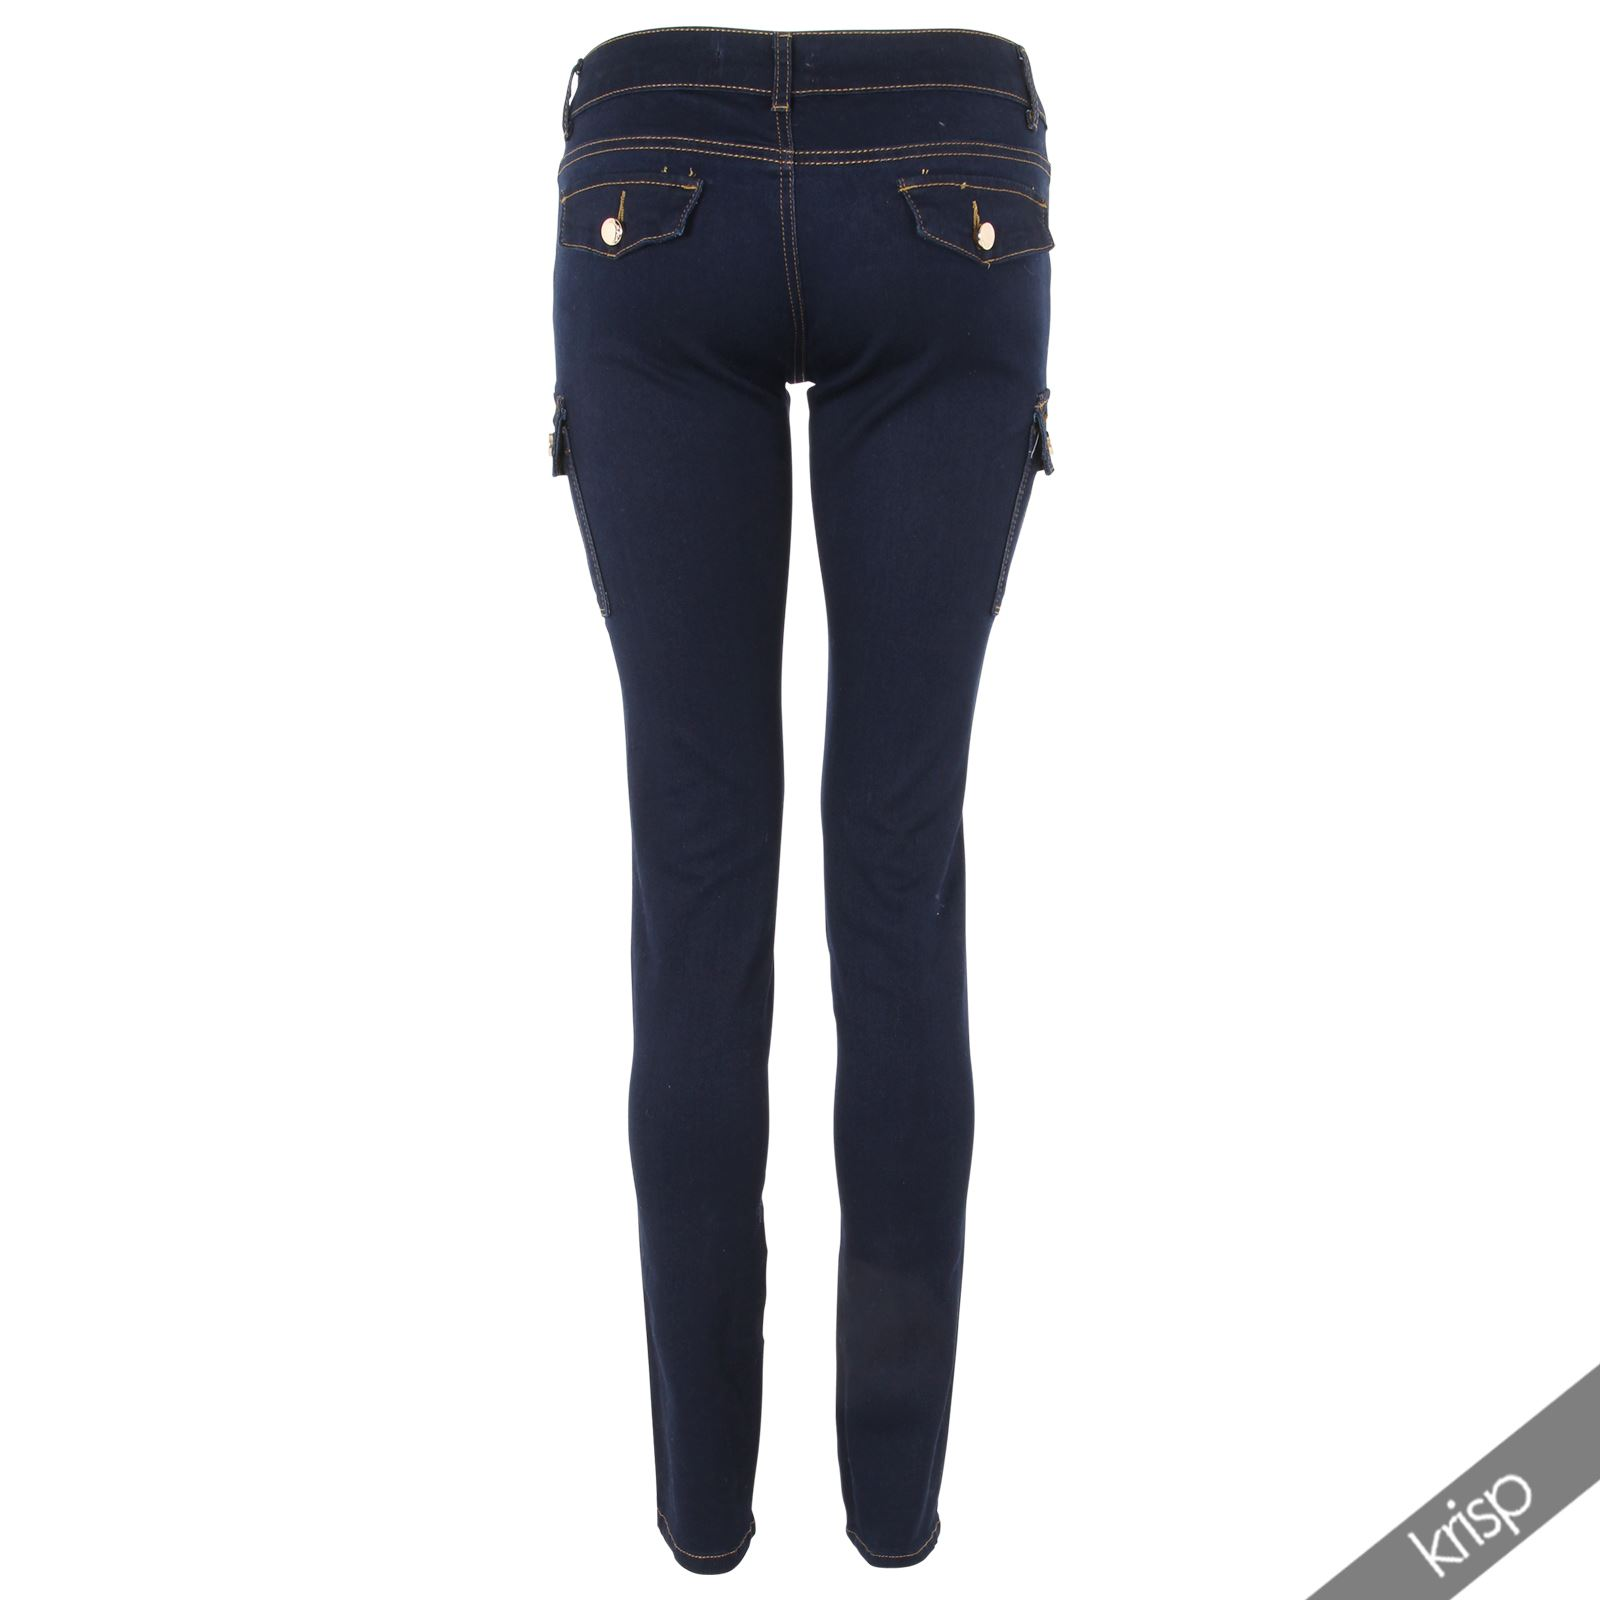 Find women's jeans for work and play Women's jeans are a wardrobe staple for a huge variety of outfits. With a nice sweater or tunic on top, you can shape a casual yet chic look for work or running errands and then switch over to the classic t-shirt and jeans when it's time to relax with friends.